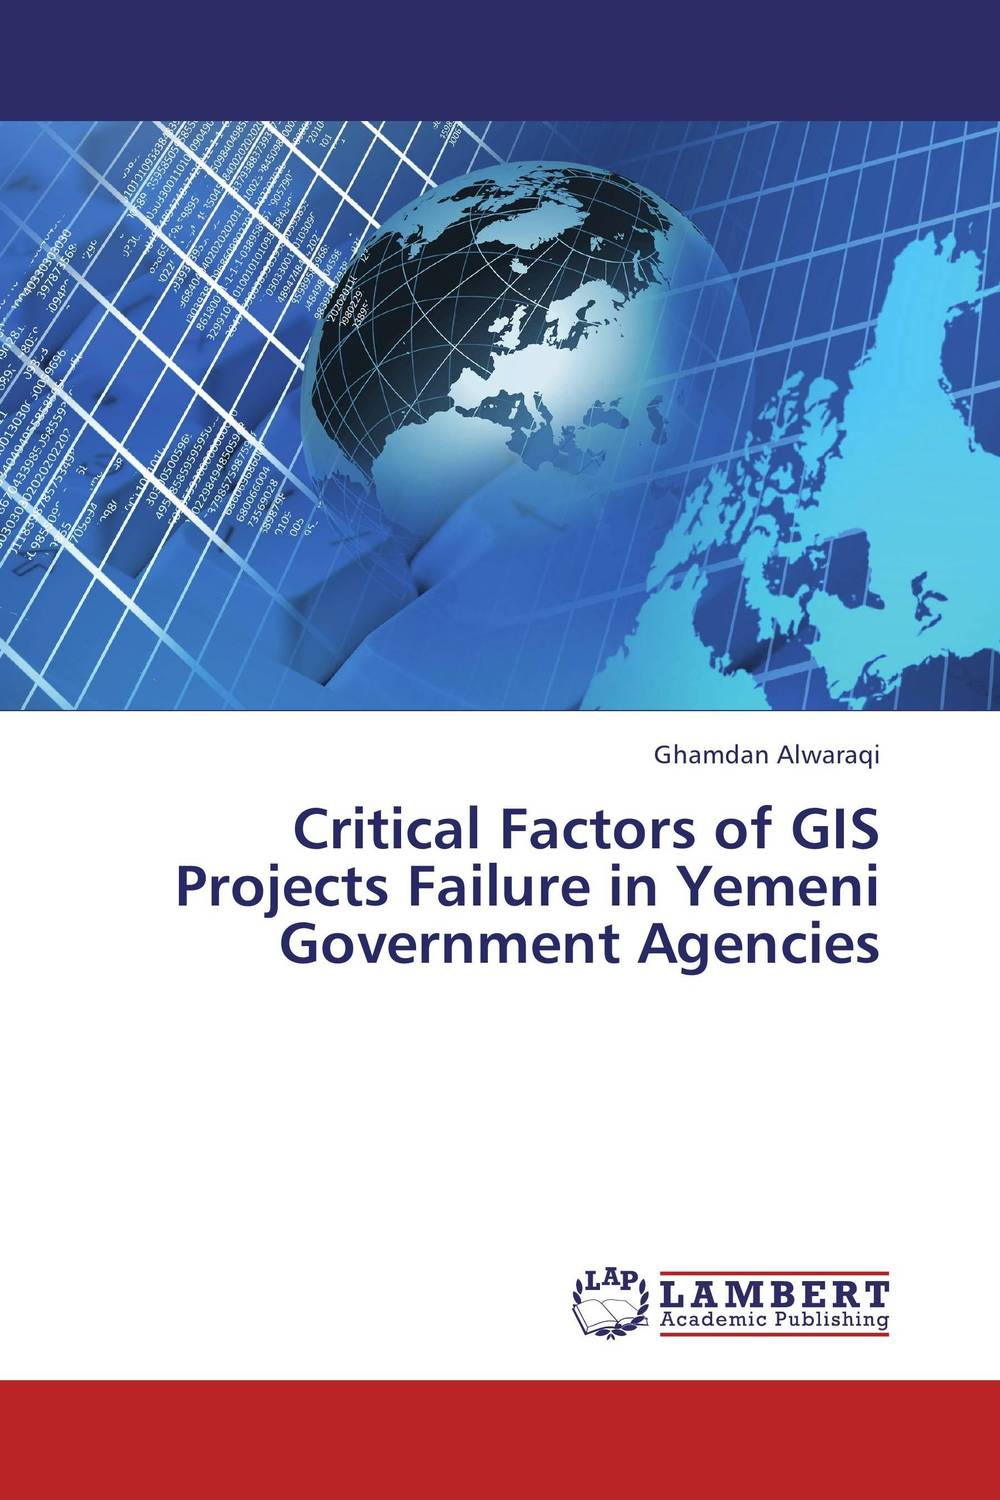 Critical Factors of GIS Projects Failure in Yemeni Government Agencies the failure of economic nationalism in slovenia s transition